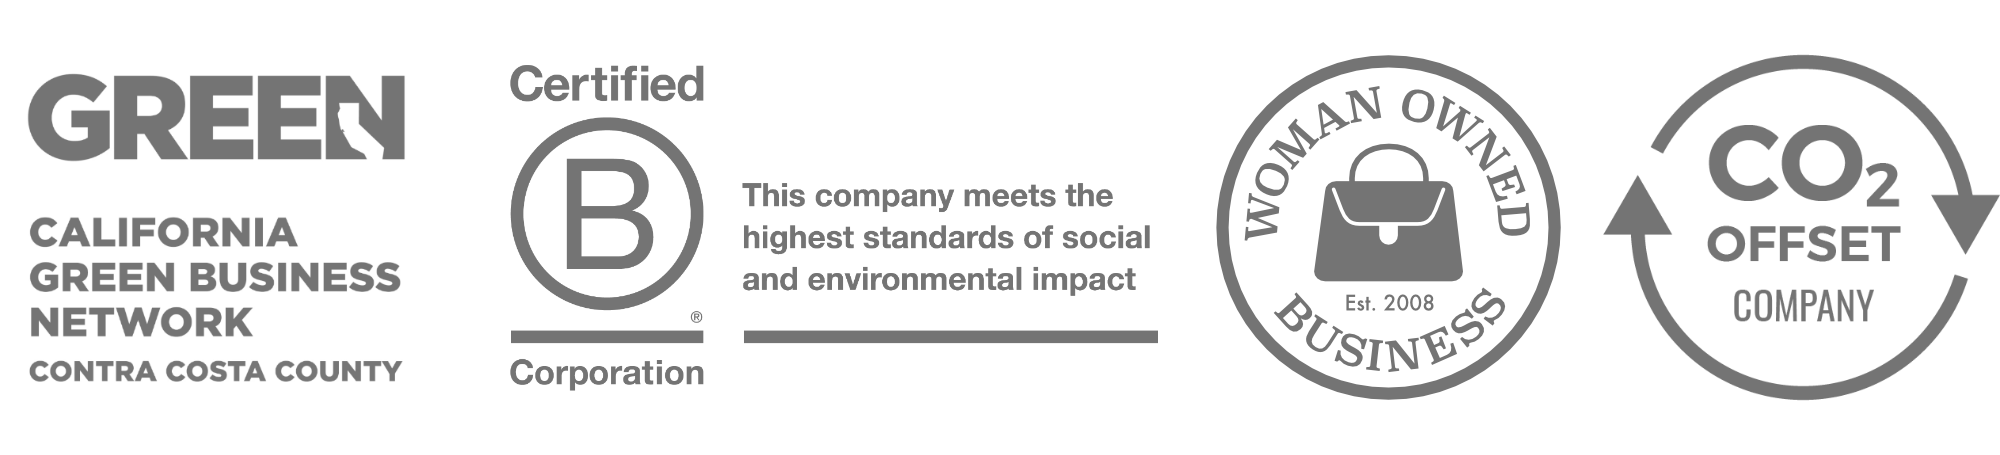 California Green Business, B-Corp, Woman Owned, and CO2 Offset Logos